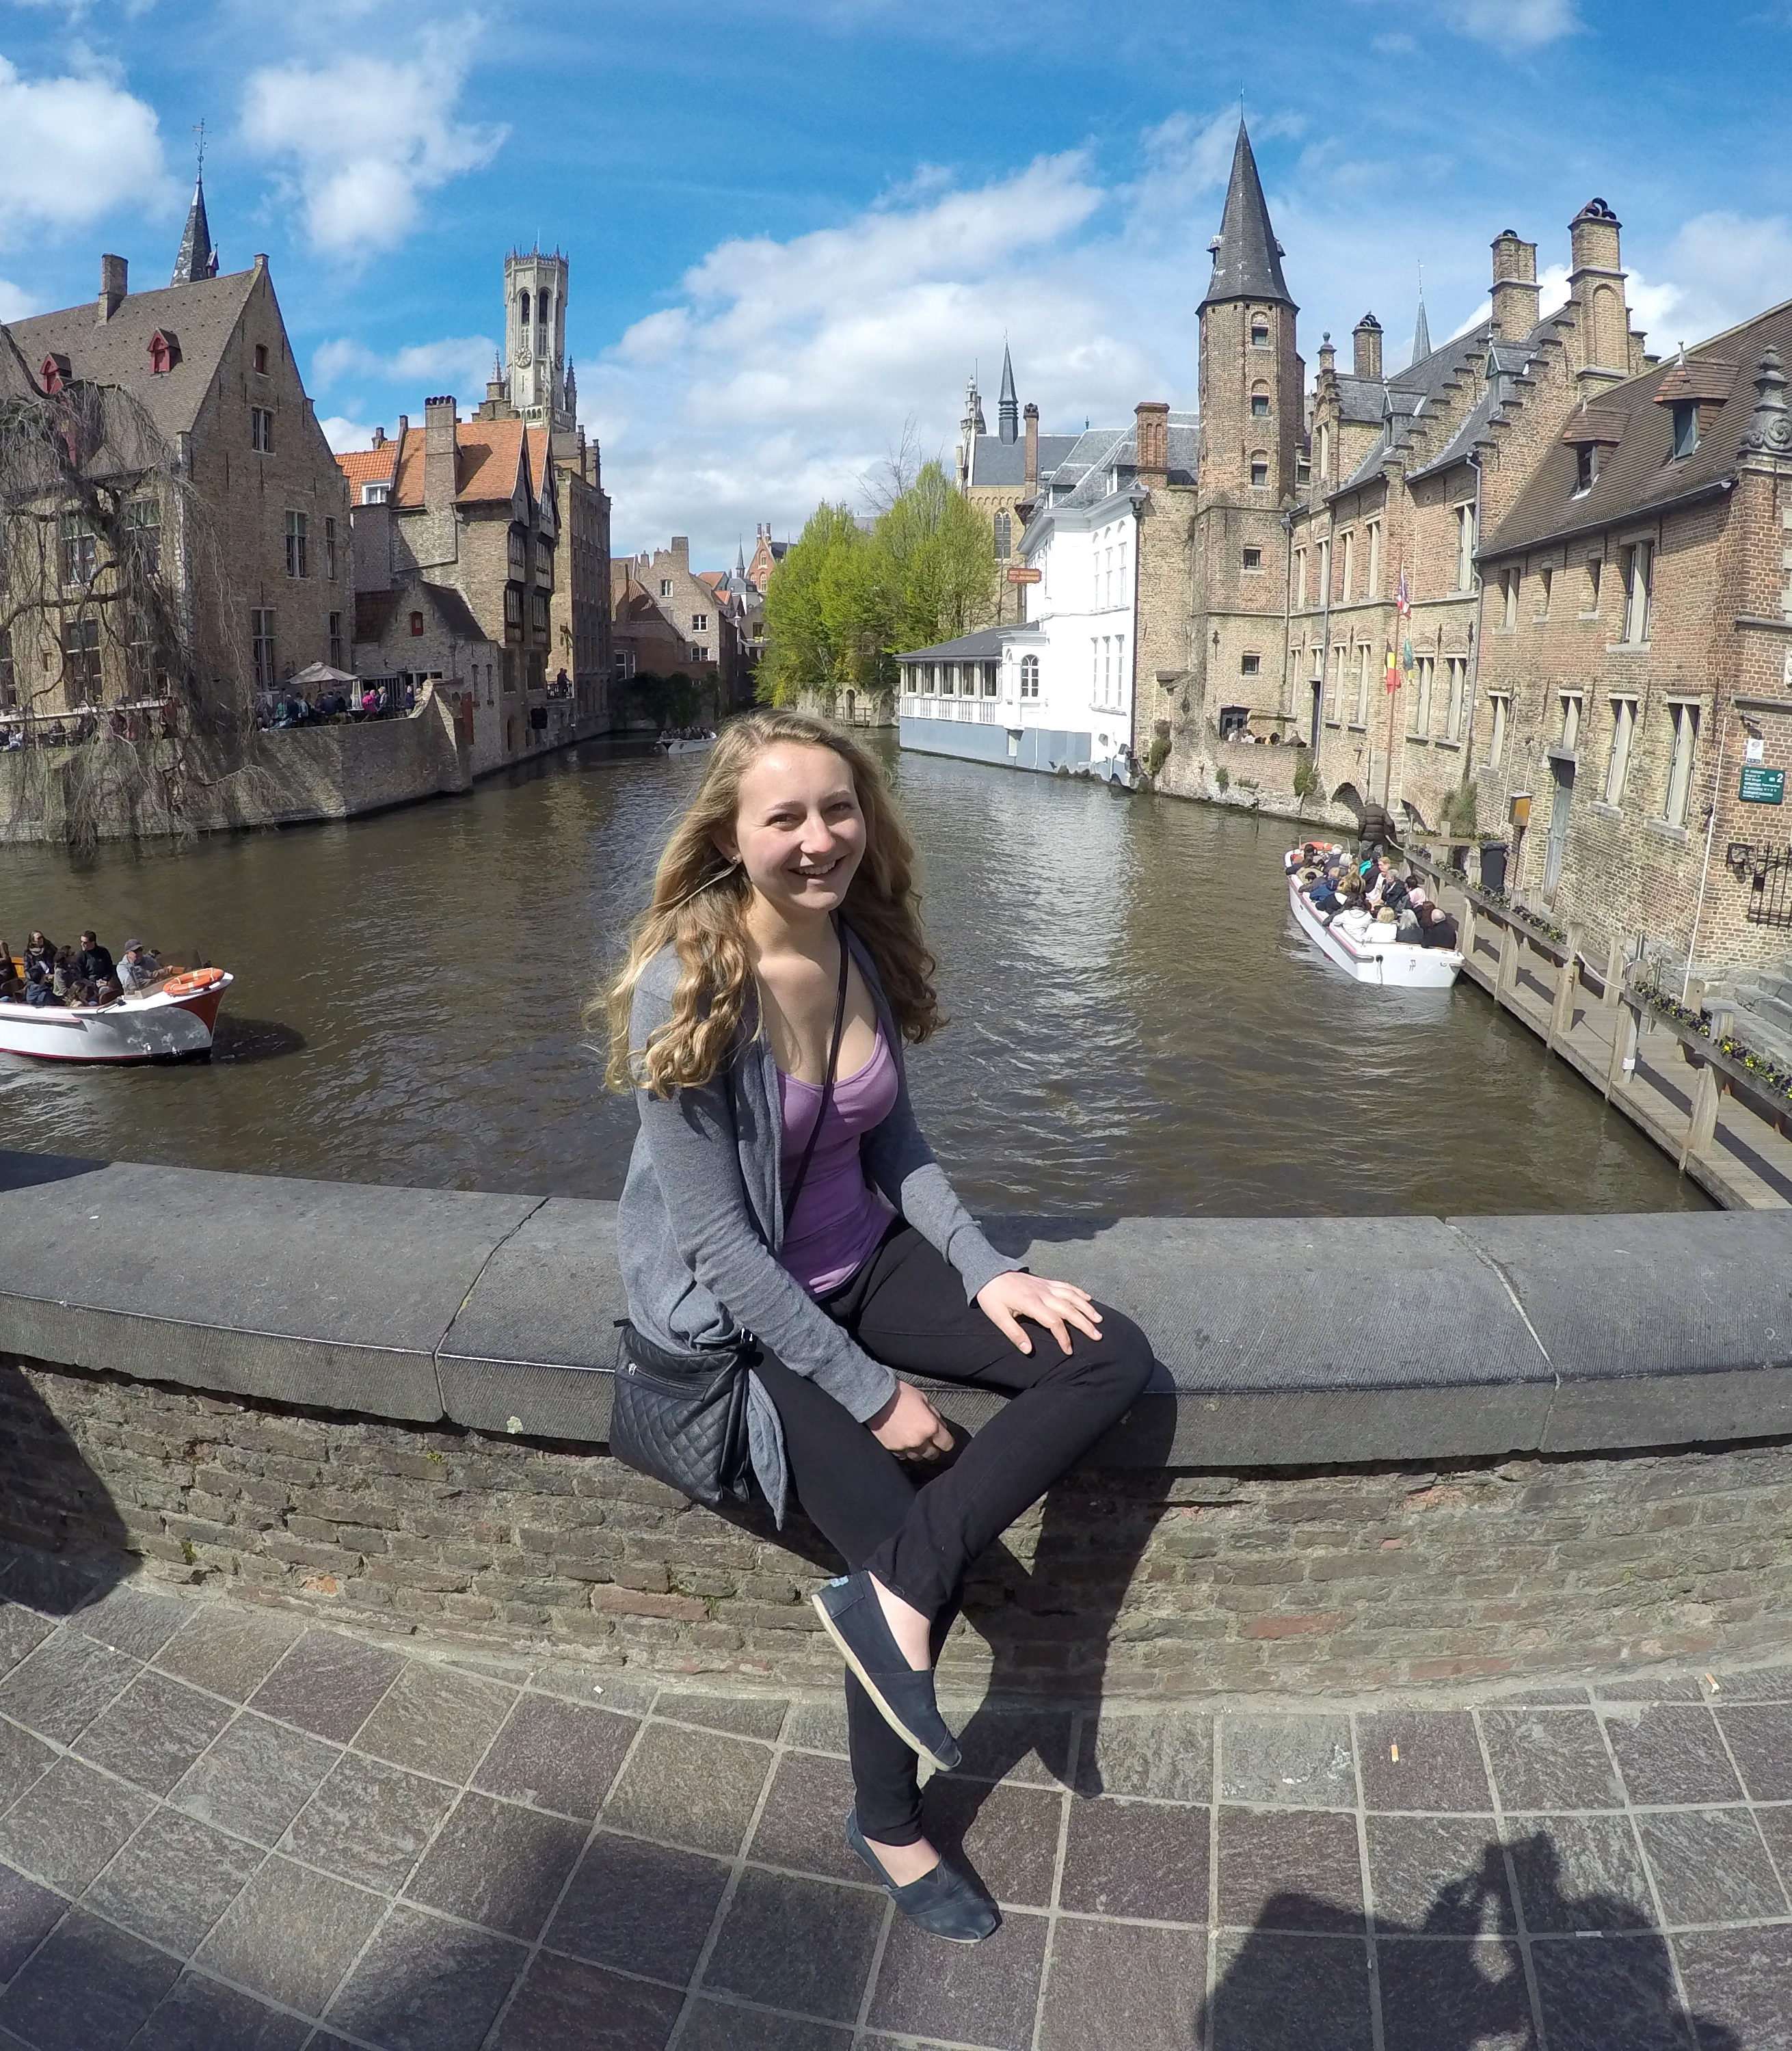 Enjoying the canals